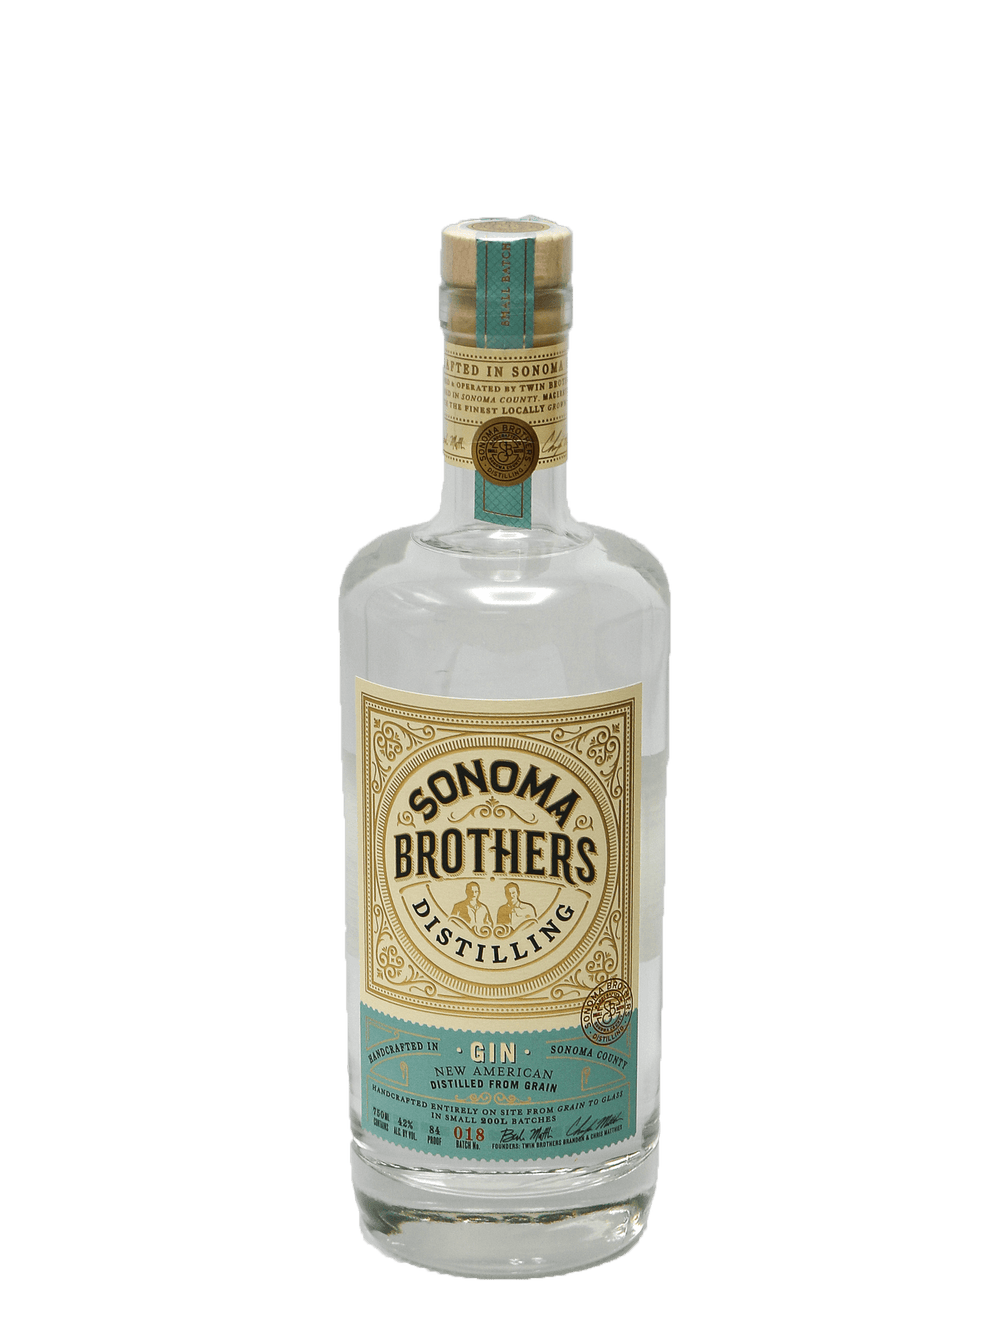 Sonoma Brothers Gin 750ml